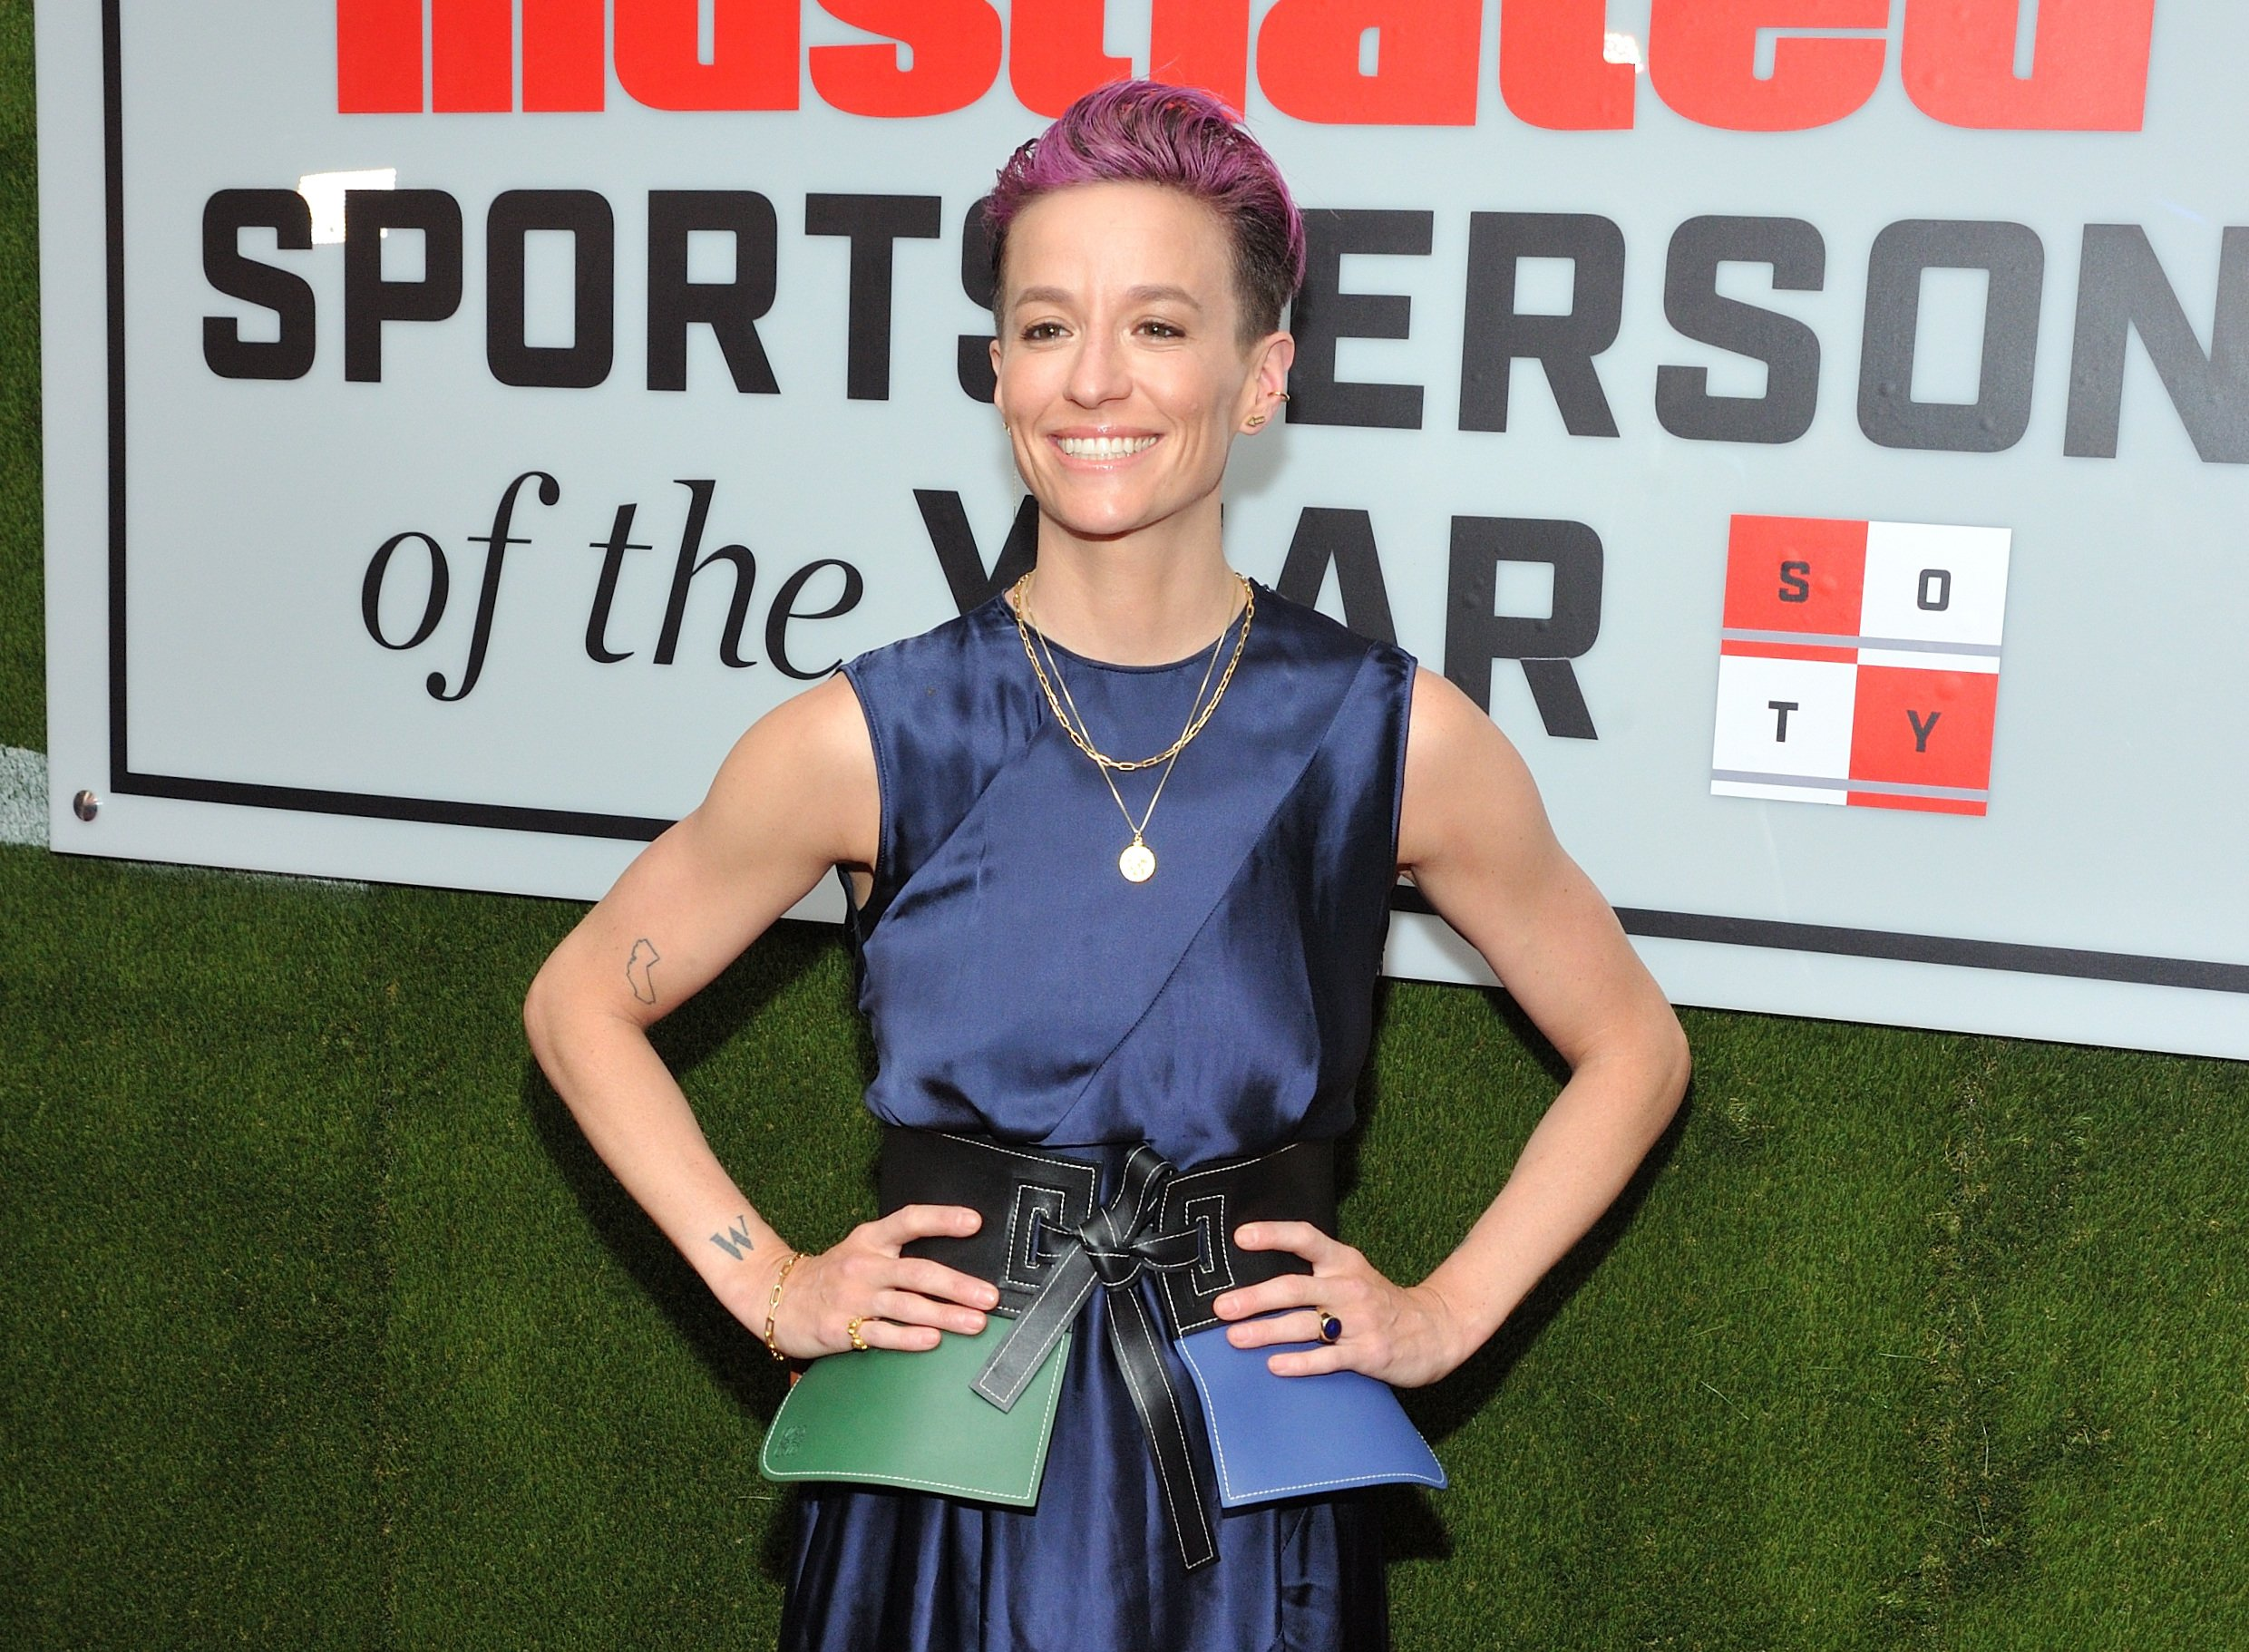 Megan Rapinoe criticises Sports Illustrated for lack of diversity in astonishing acceptance speech for their Sportsperson of the Year award